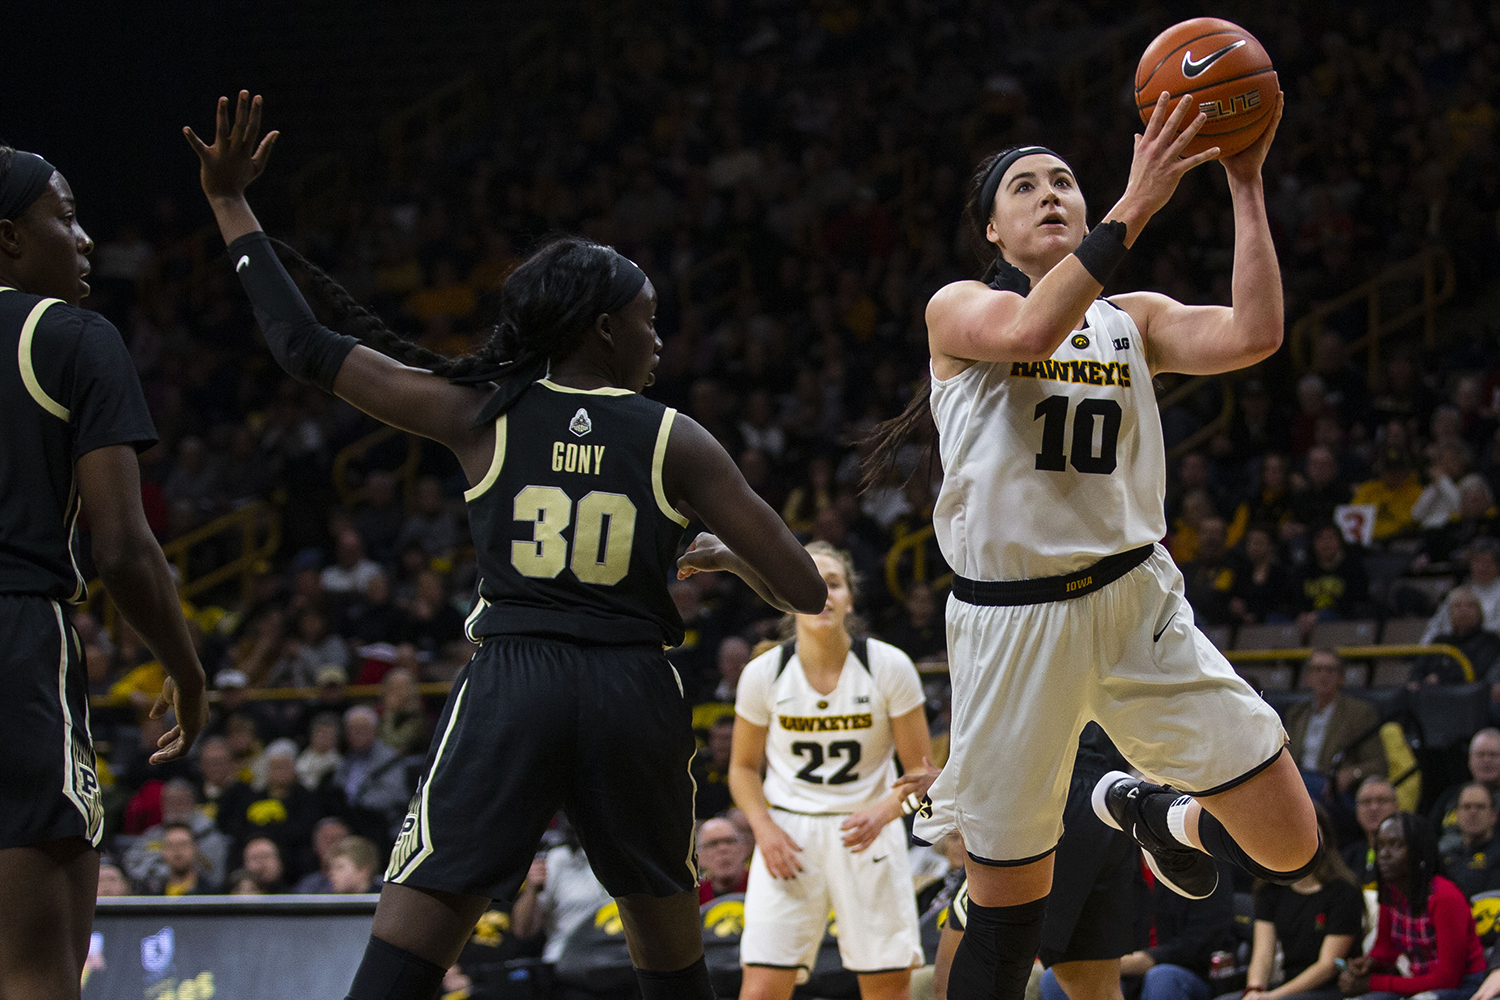 Iowa center Megan Gustafson attempts a shot during the Iowa/Purdue women's basketball game at Carver-Hawkeye Arena on Sunday, January 27, 2019. The Hawkeyes defeated the Boilermakers, 72-58.